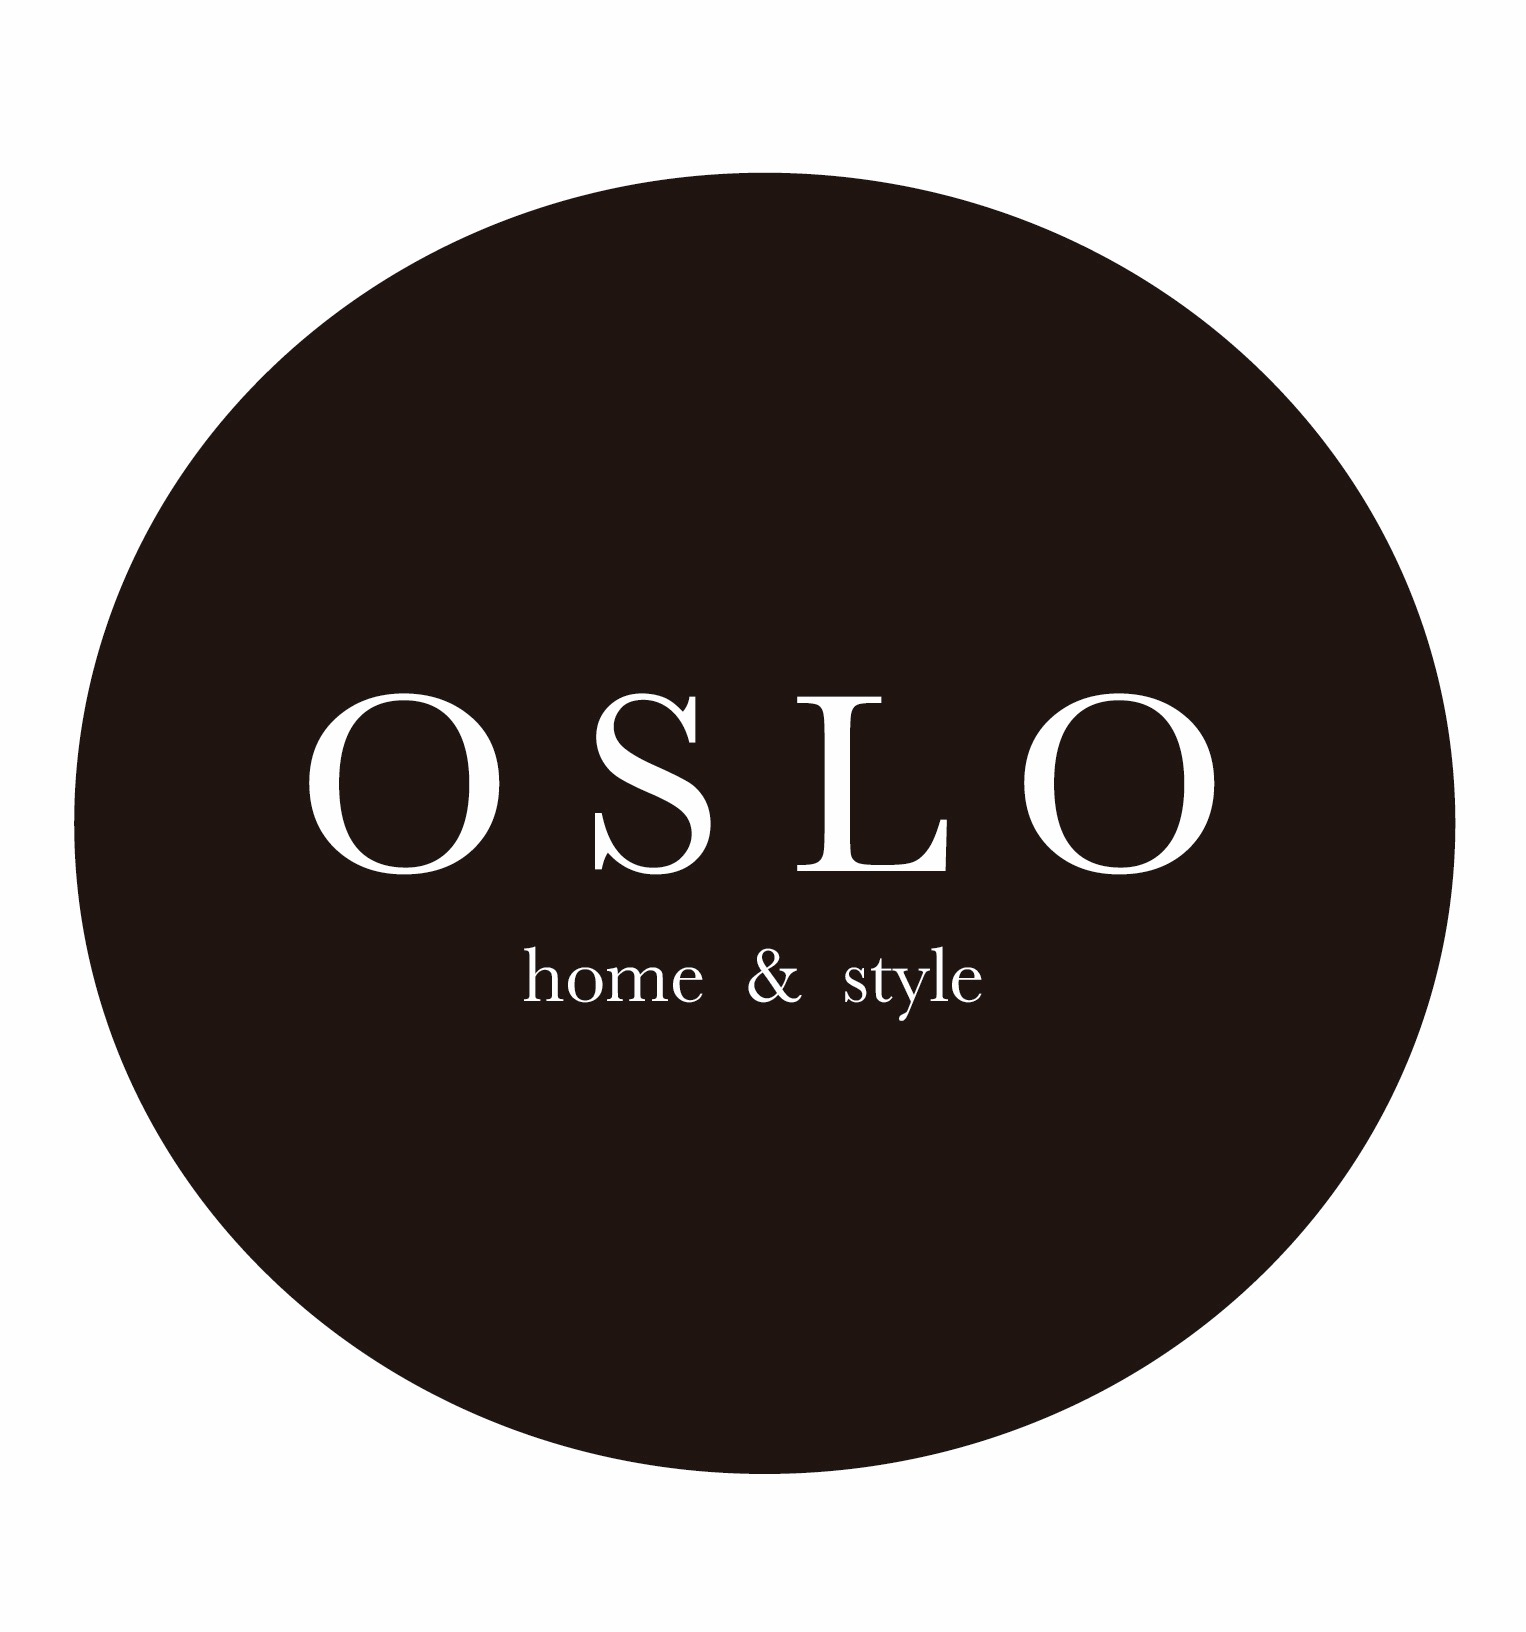 OSLO LIFESTYLE & INTERIORES